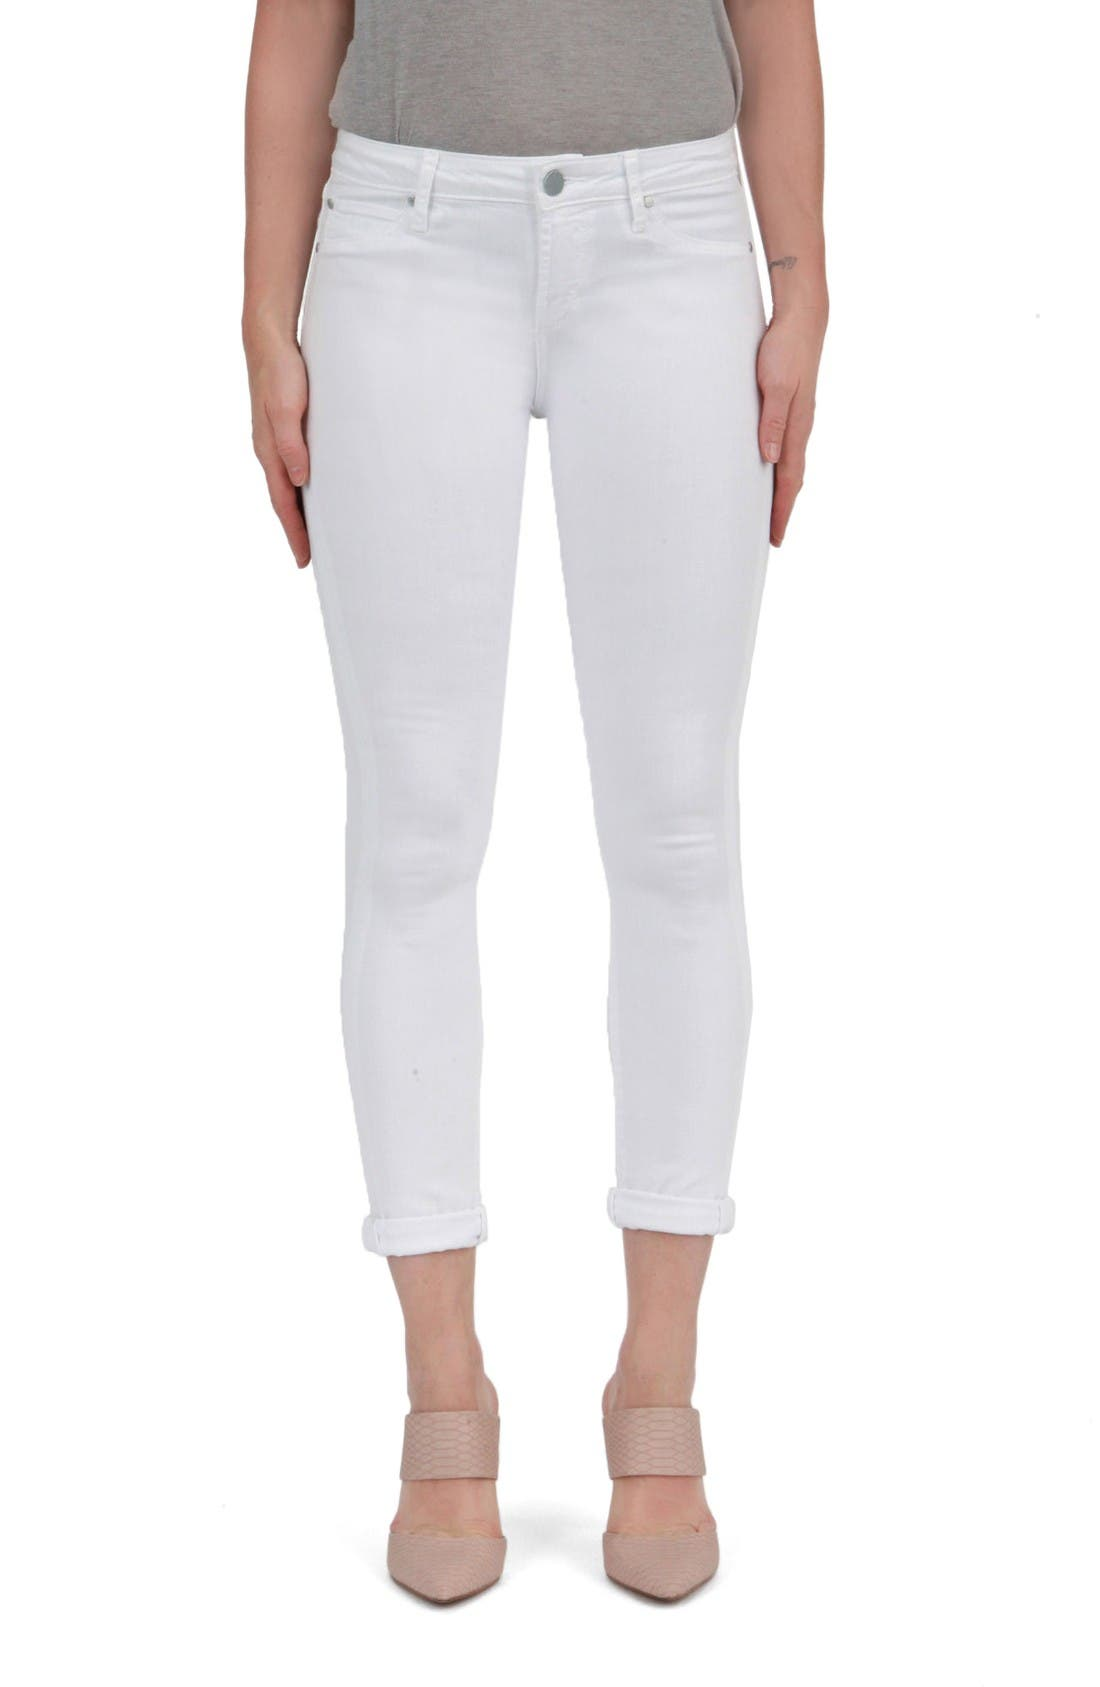 Articles of Society Karen Crop Skinny Jeans